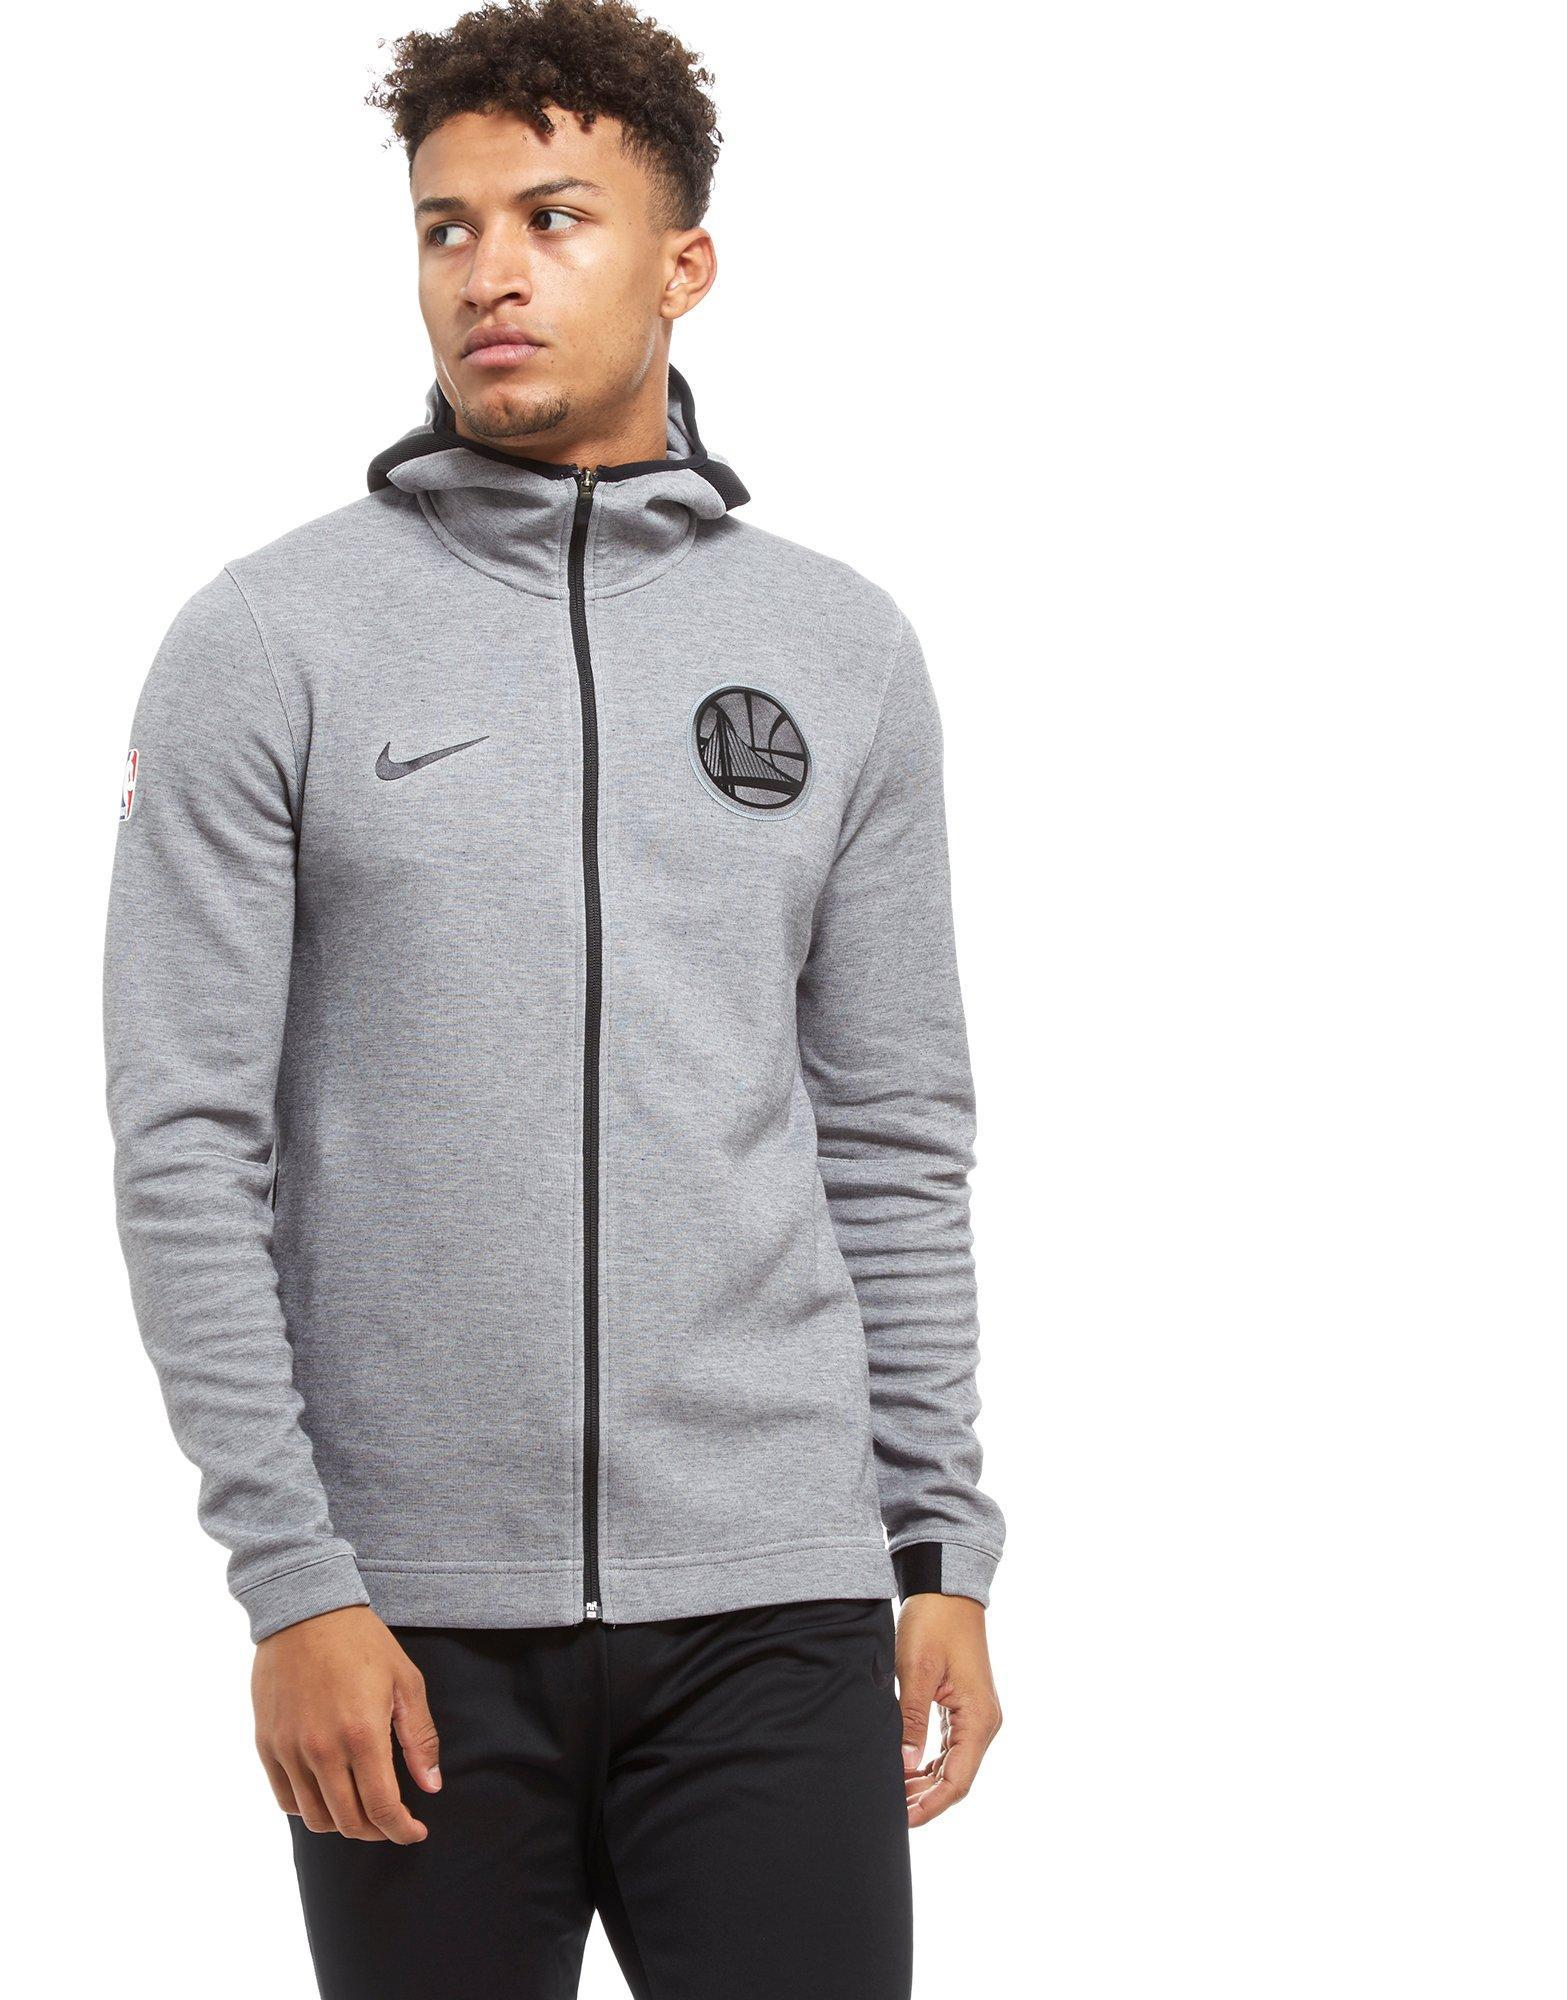 Nike Pullover Therma Flex Top